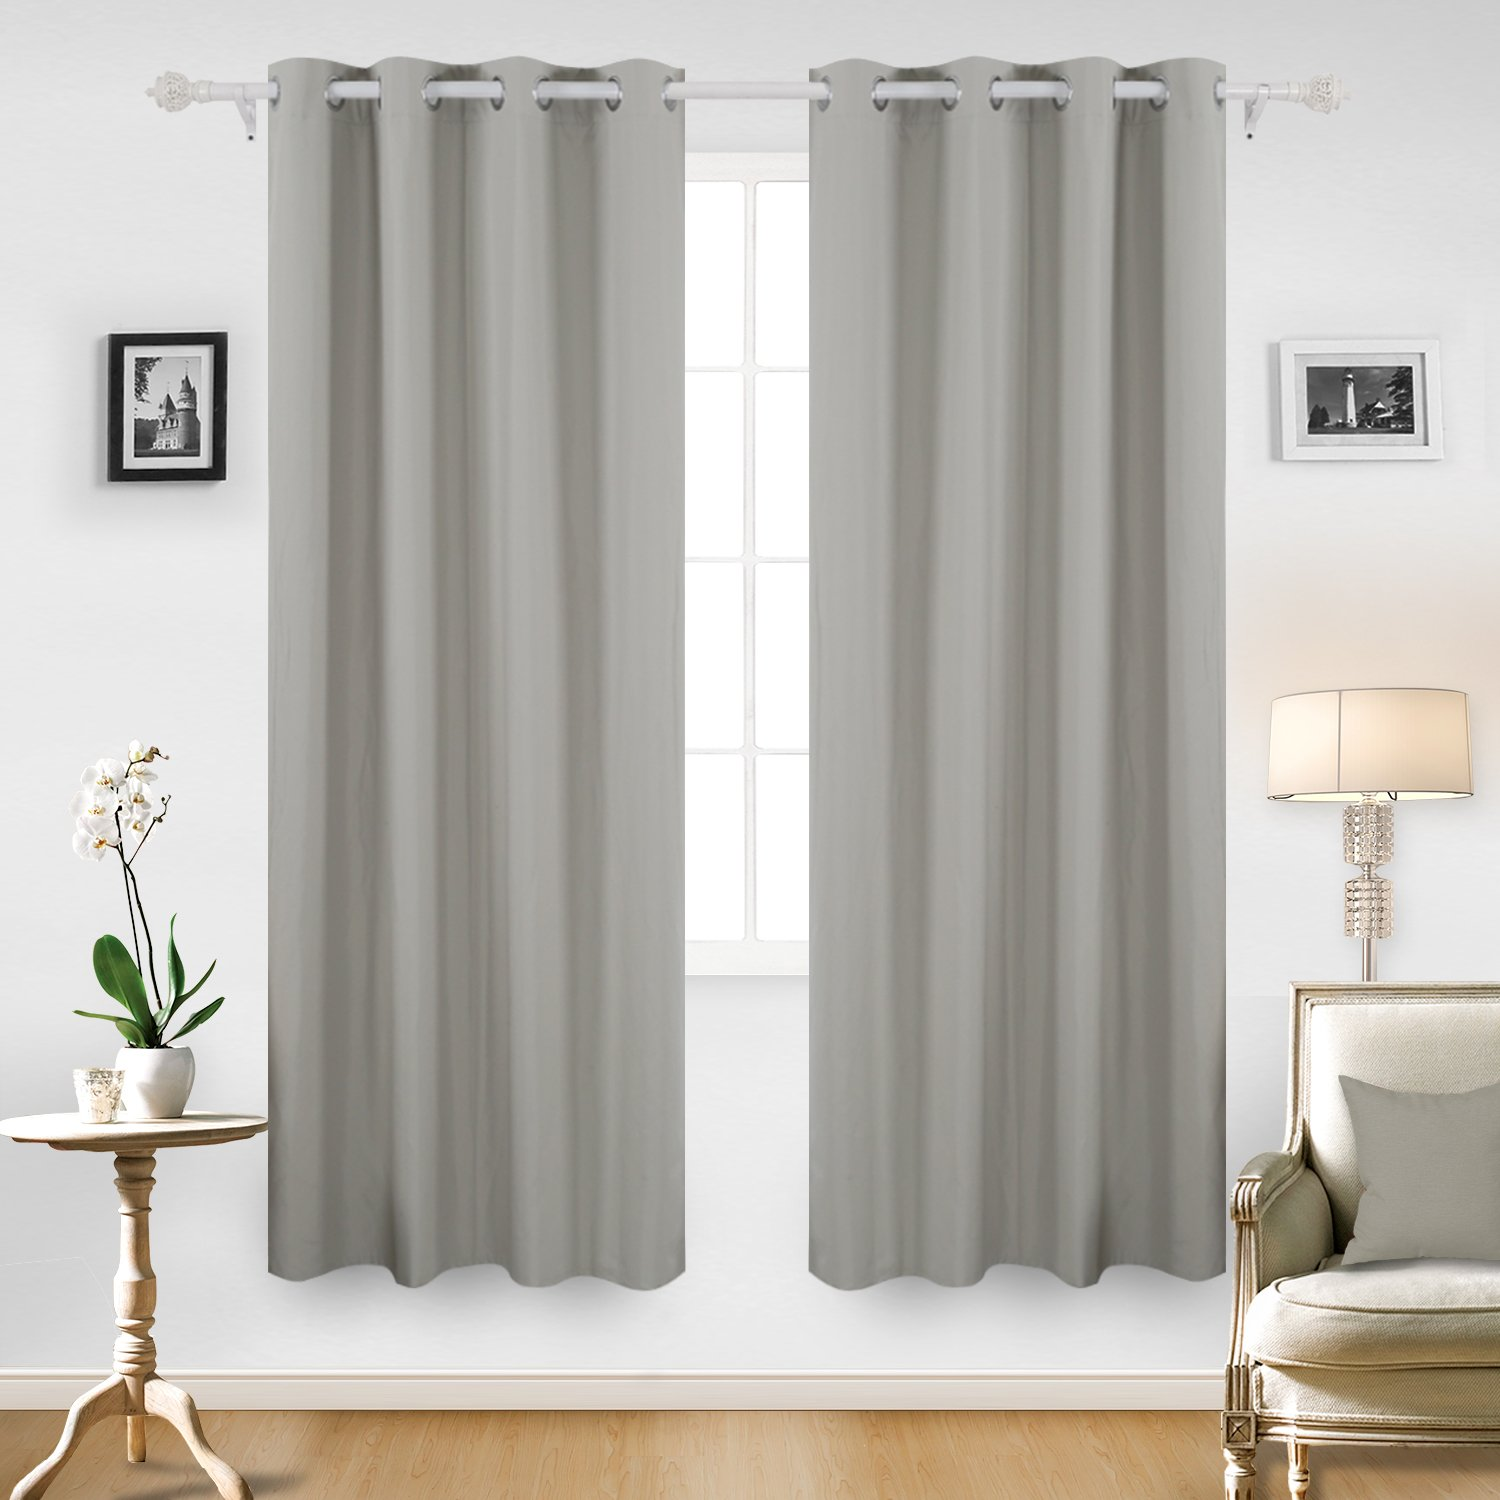 Deconovo Textured Thermal Insulated Blackout Curtain Heavy Fabric Drapes With Coating Back Layer For Bedroom 52Wx63L Inch One Pair Grey